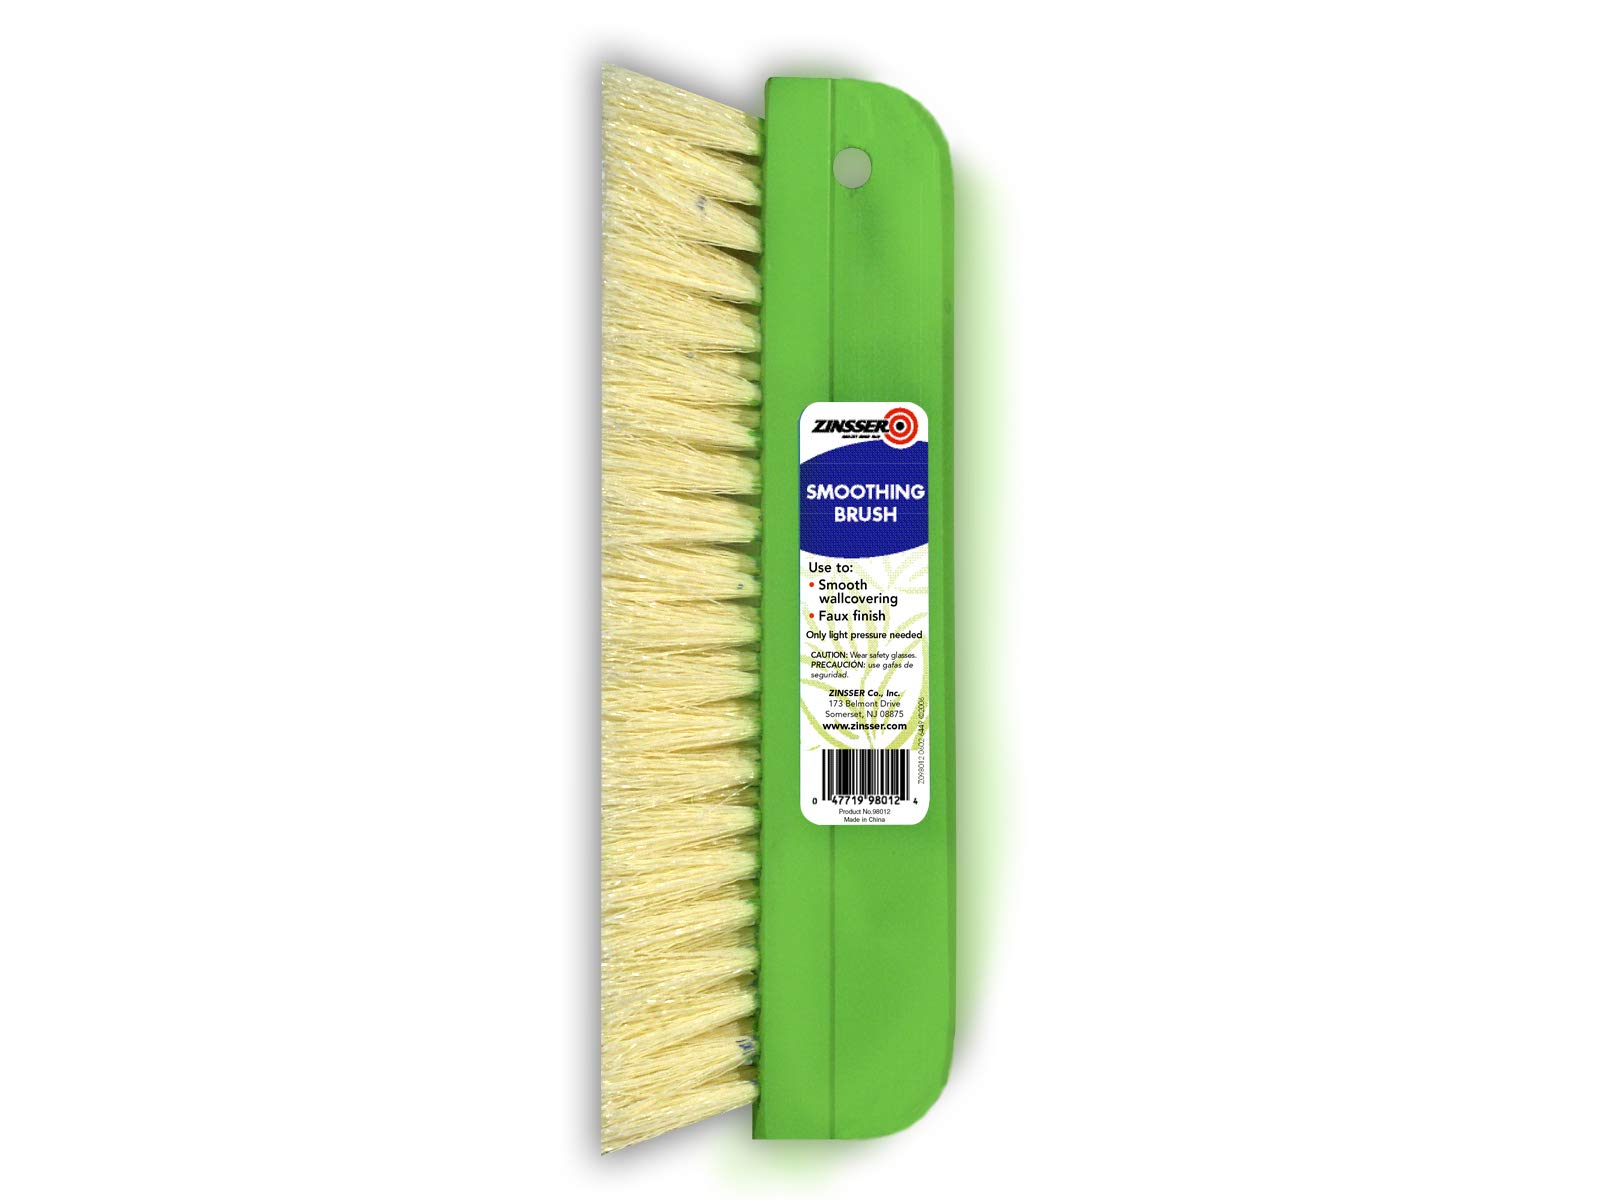 Zinsser 98012 12-Inch Smoothing Brush, 1 Pack